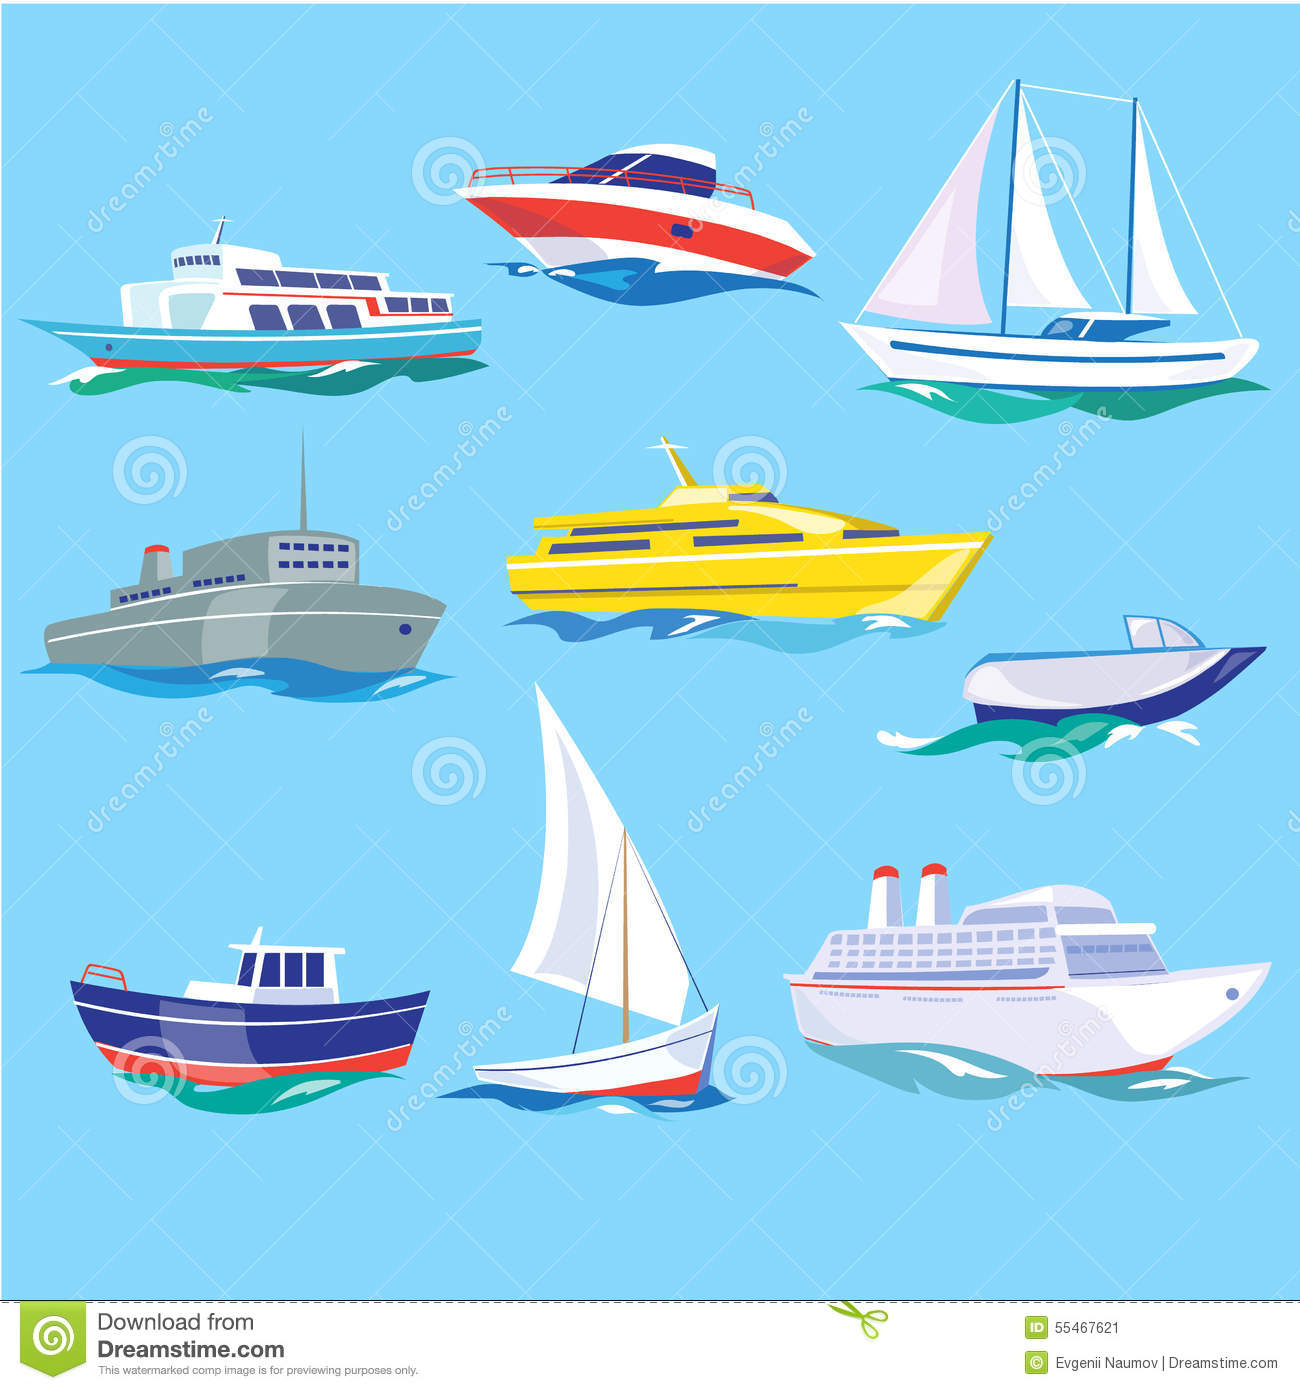 Set Of Sea Ships Water Carriage And Maritime Stock Vector - Illustration of passenger, marine ...